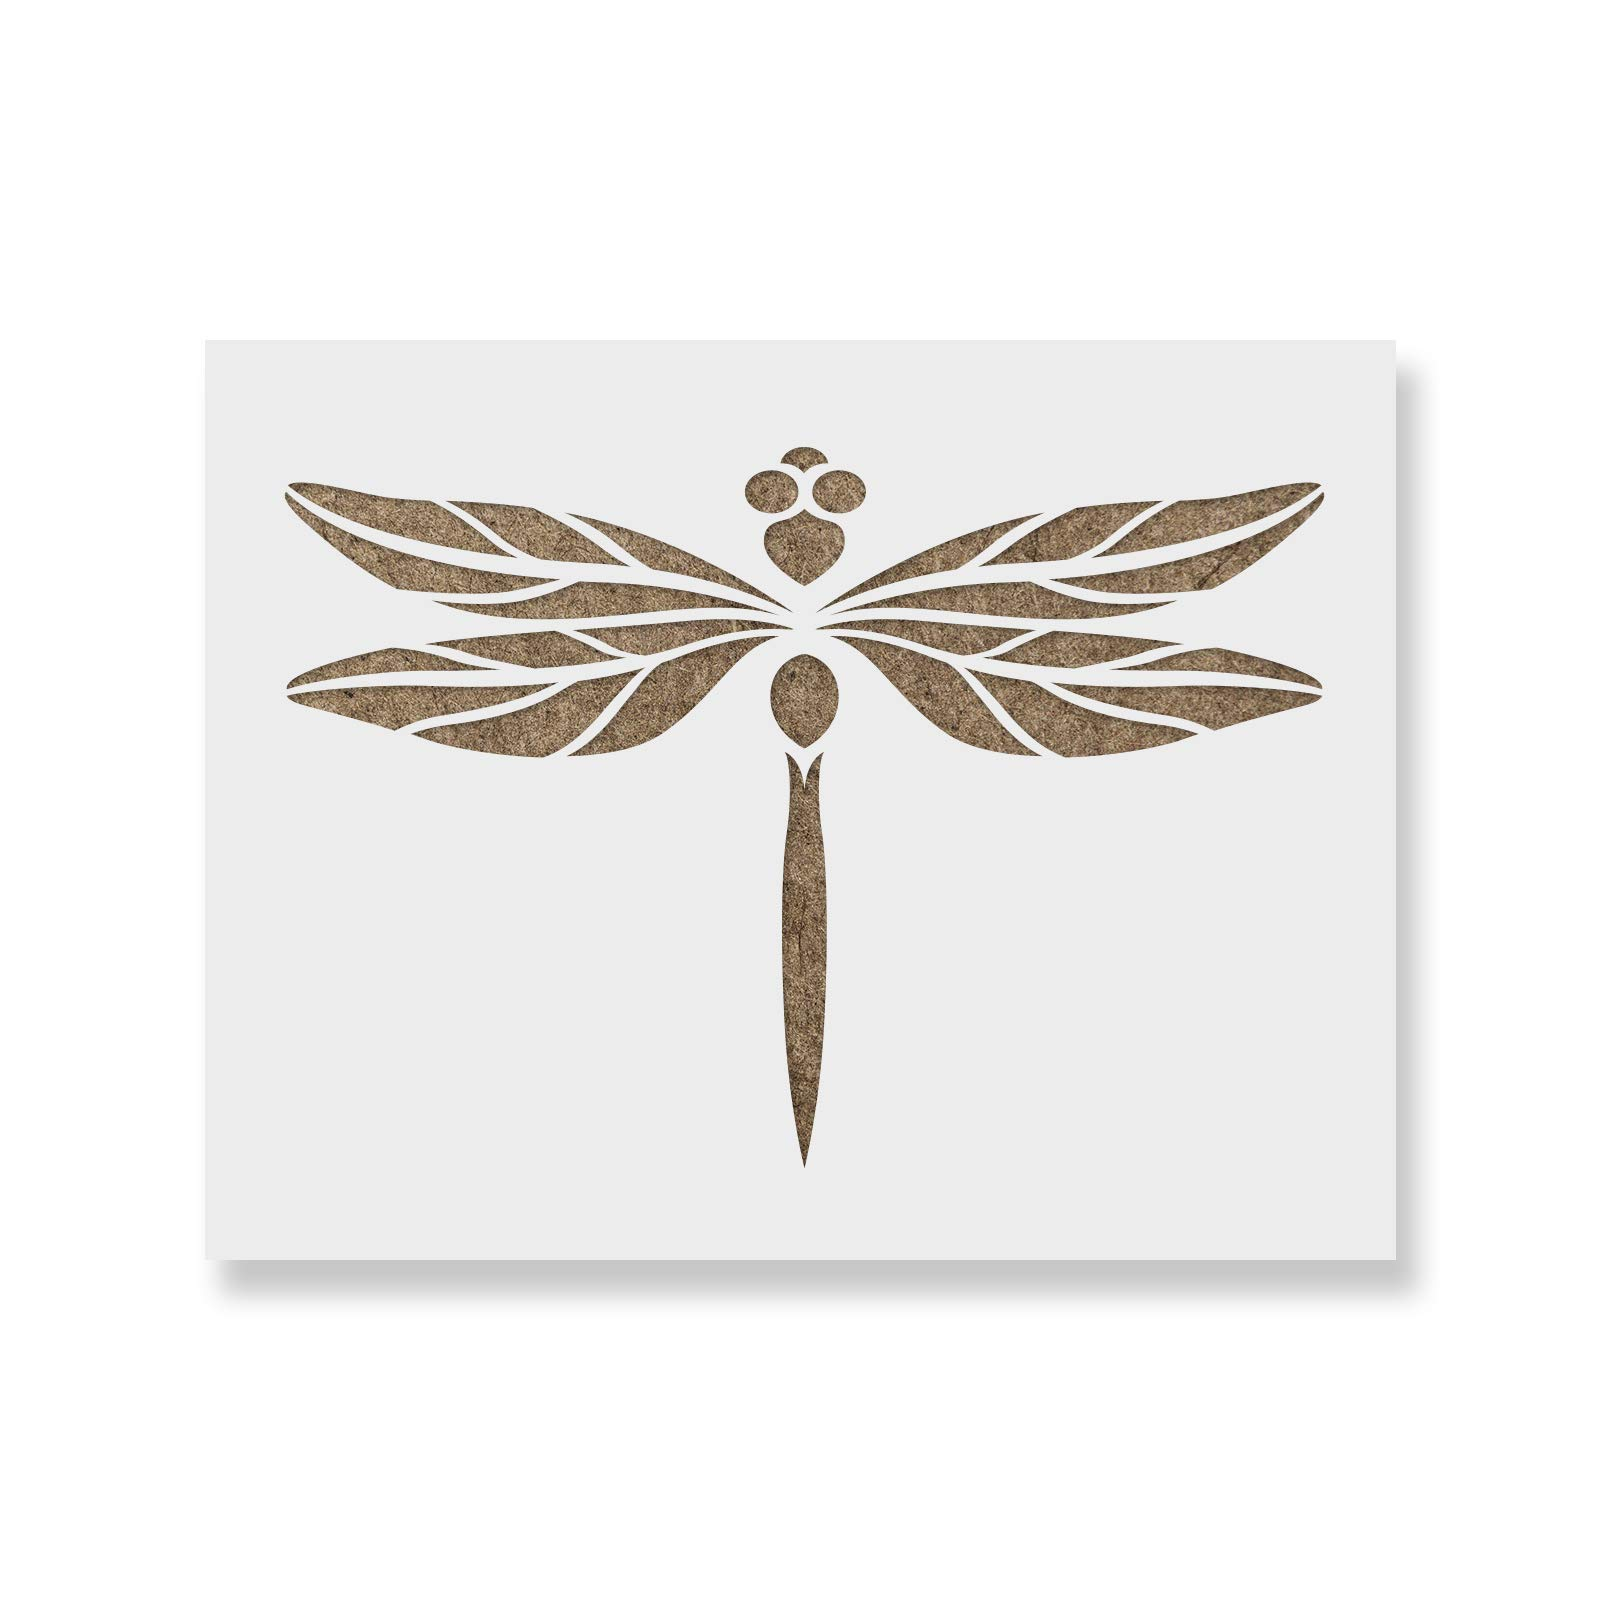 Dragonfly Stencil Template - Reusable Stencil with Multiple Sizes Available